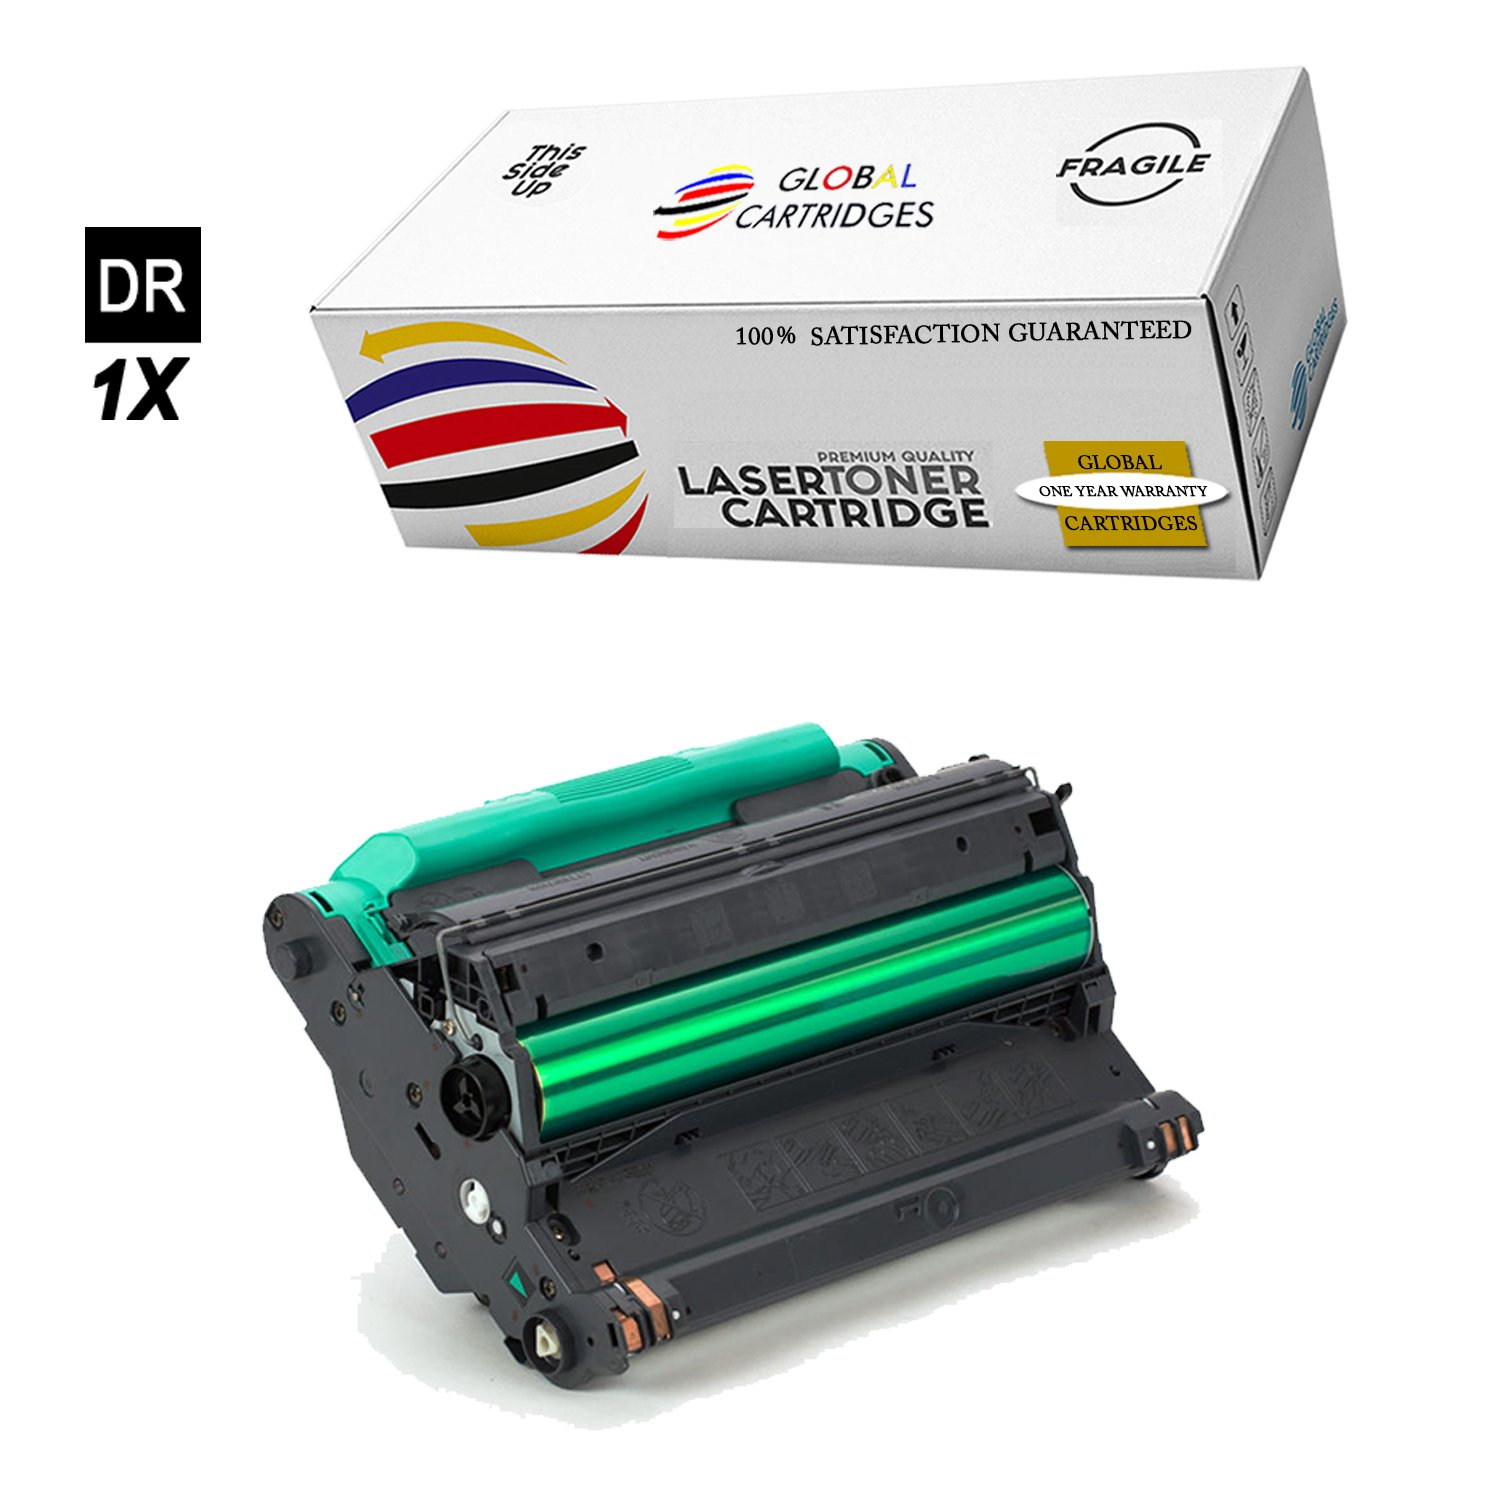 GLB Premium Quality HP 2550 /HP 122A Drum Unit HP C9704A Professionally Remanufactured in USA for HP Color LaserJet 2550, 2820, 2840, 2550n, 2550LN Series Printers